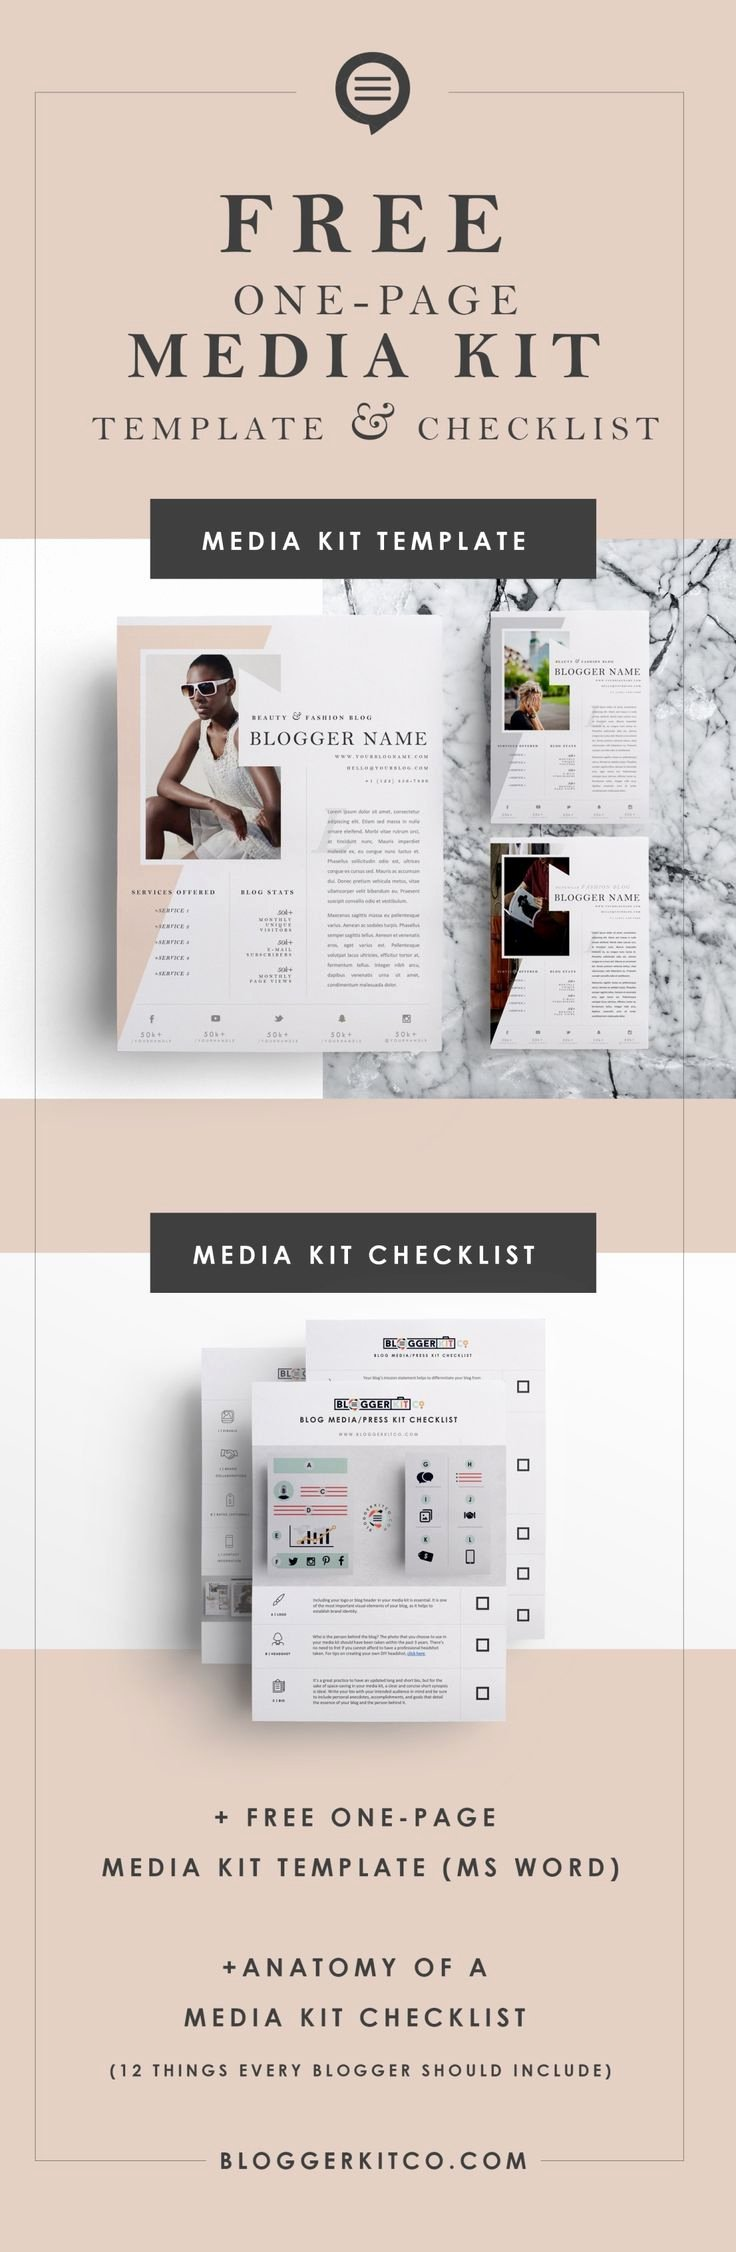 Free Press Kit Template Fresh Best 25 Templates Free Ideas On Pinterest